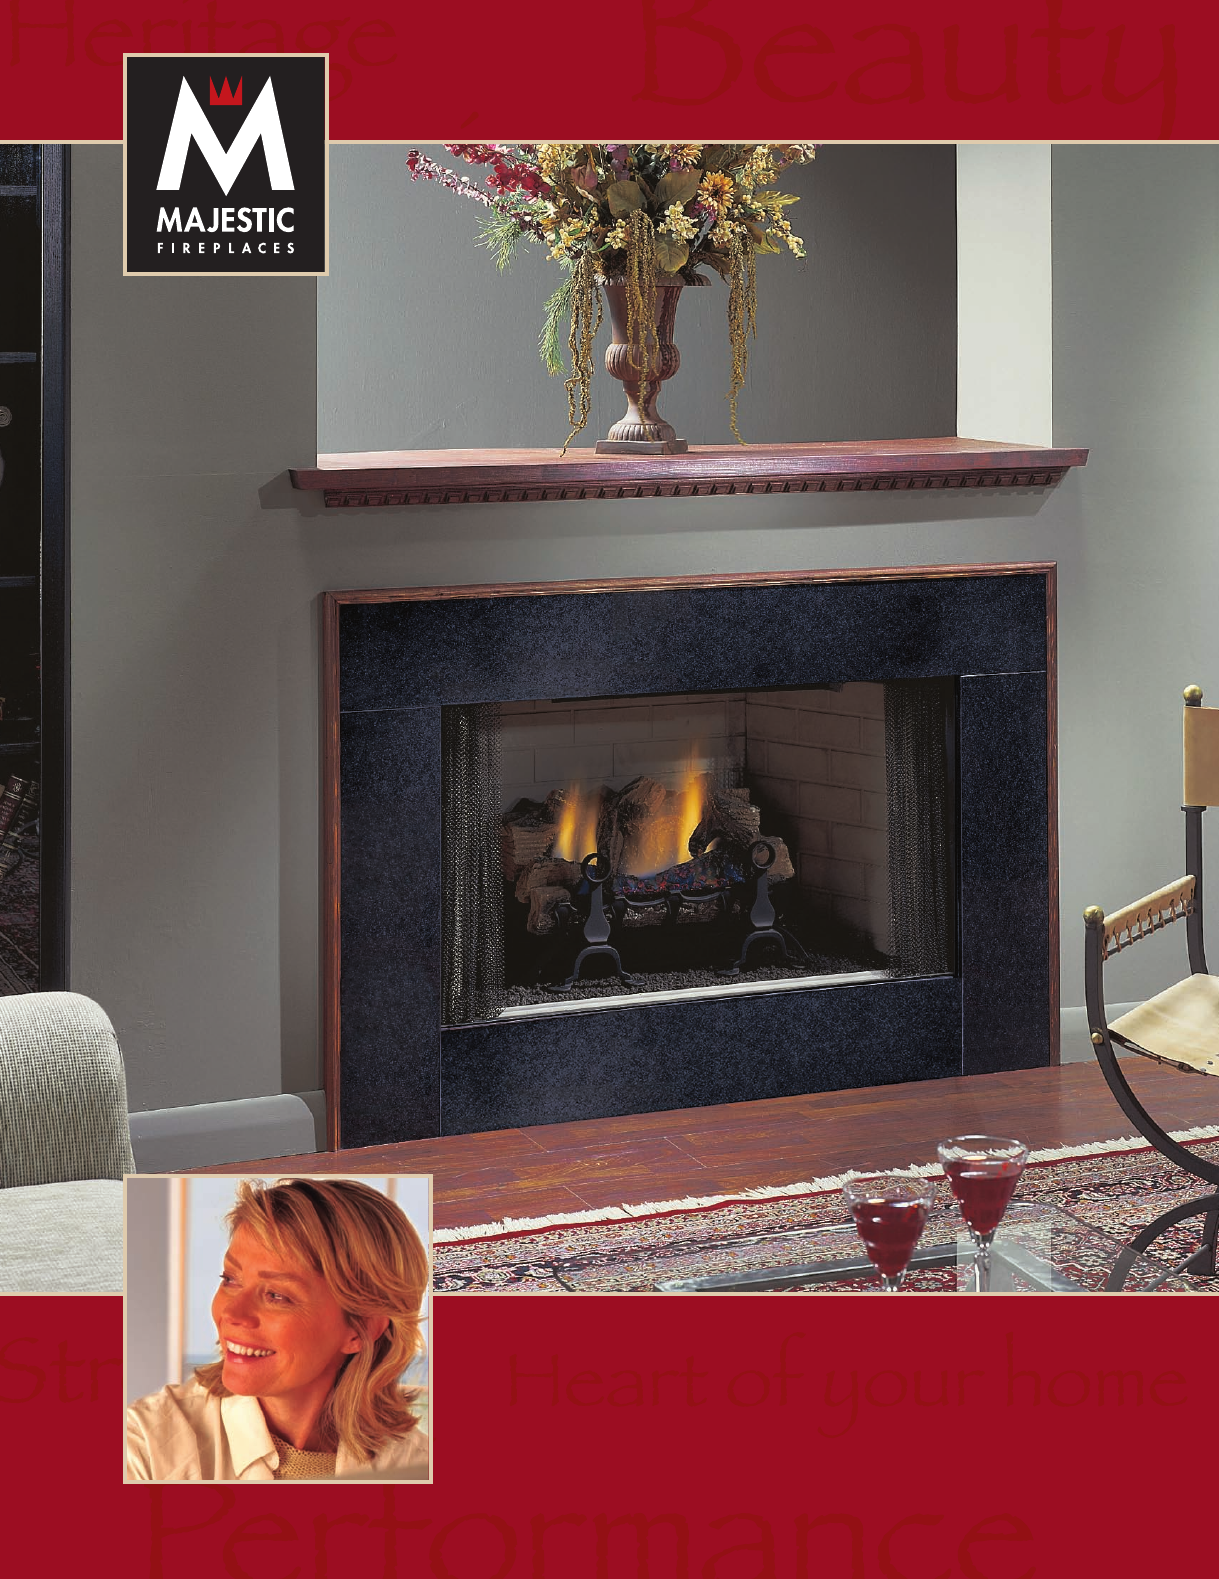 majestic appliances indoor fireplace vl21 user guide